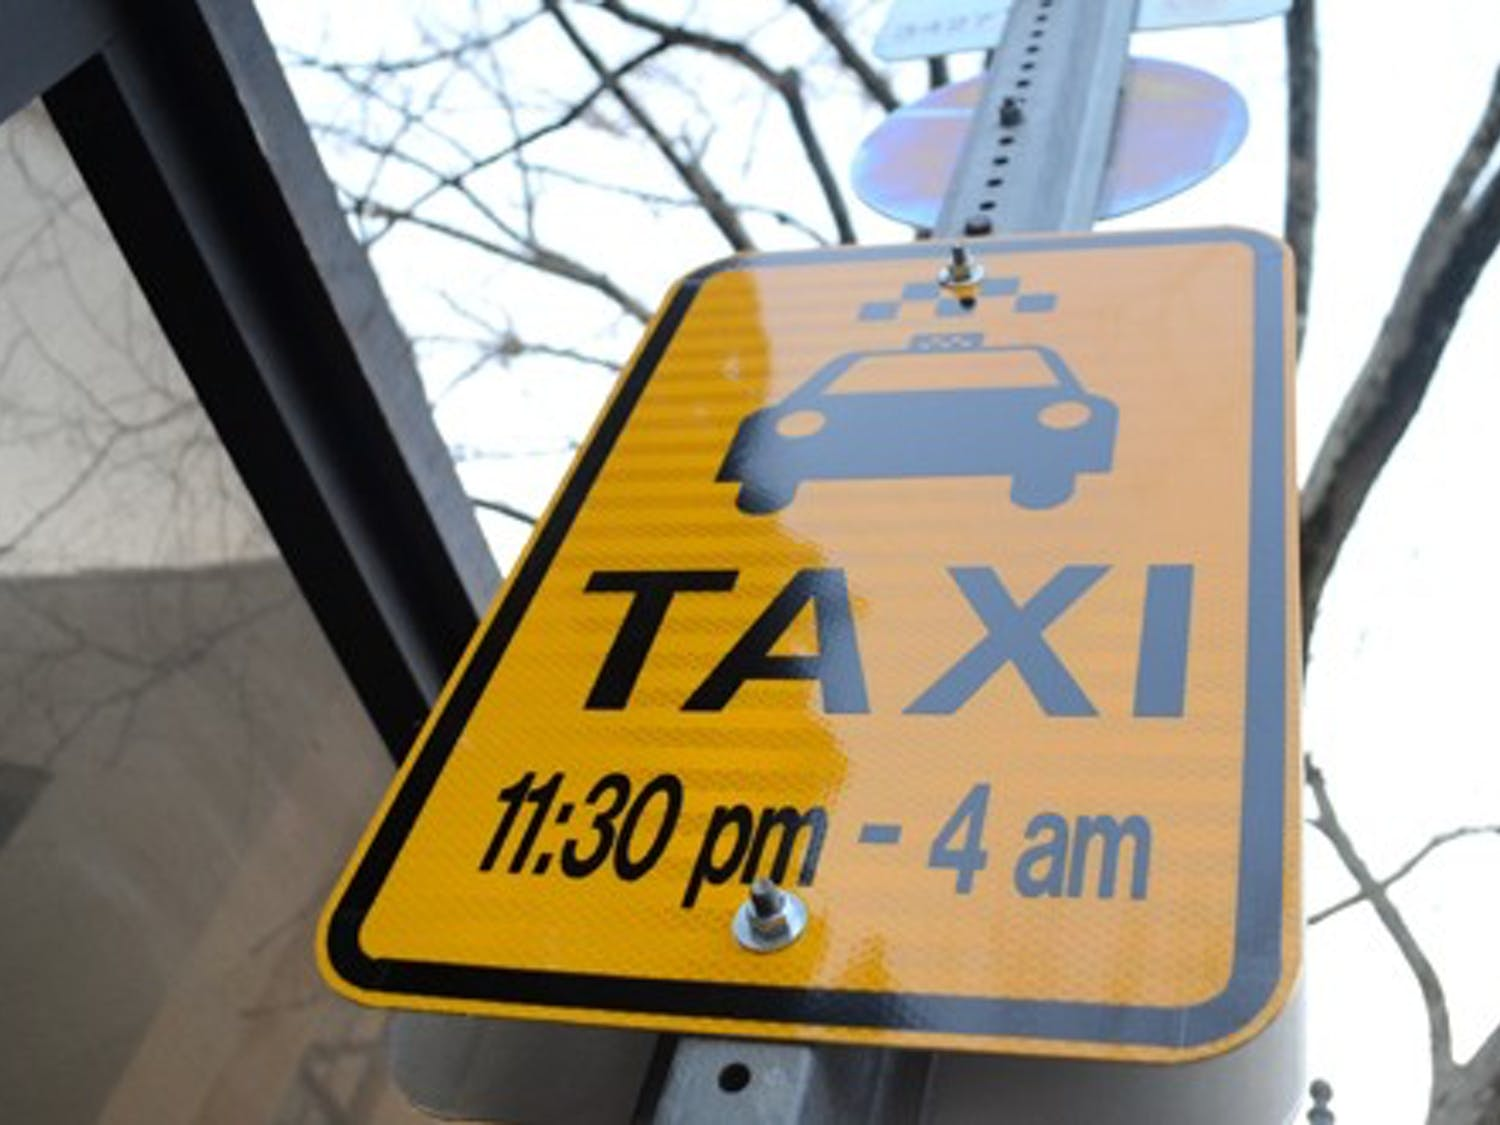 New taxi regulations in Chapel Hill went into effect on Jan. 1, which included a flat rate for taxis around downtown.